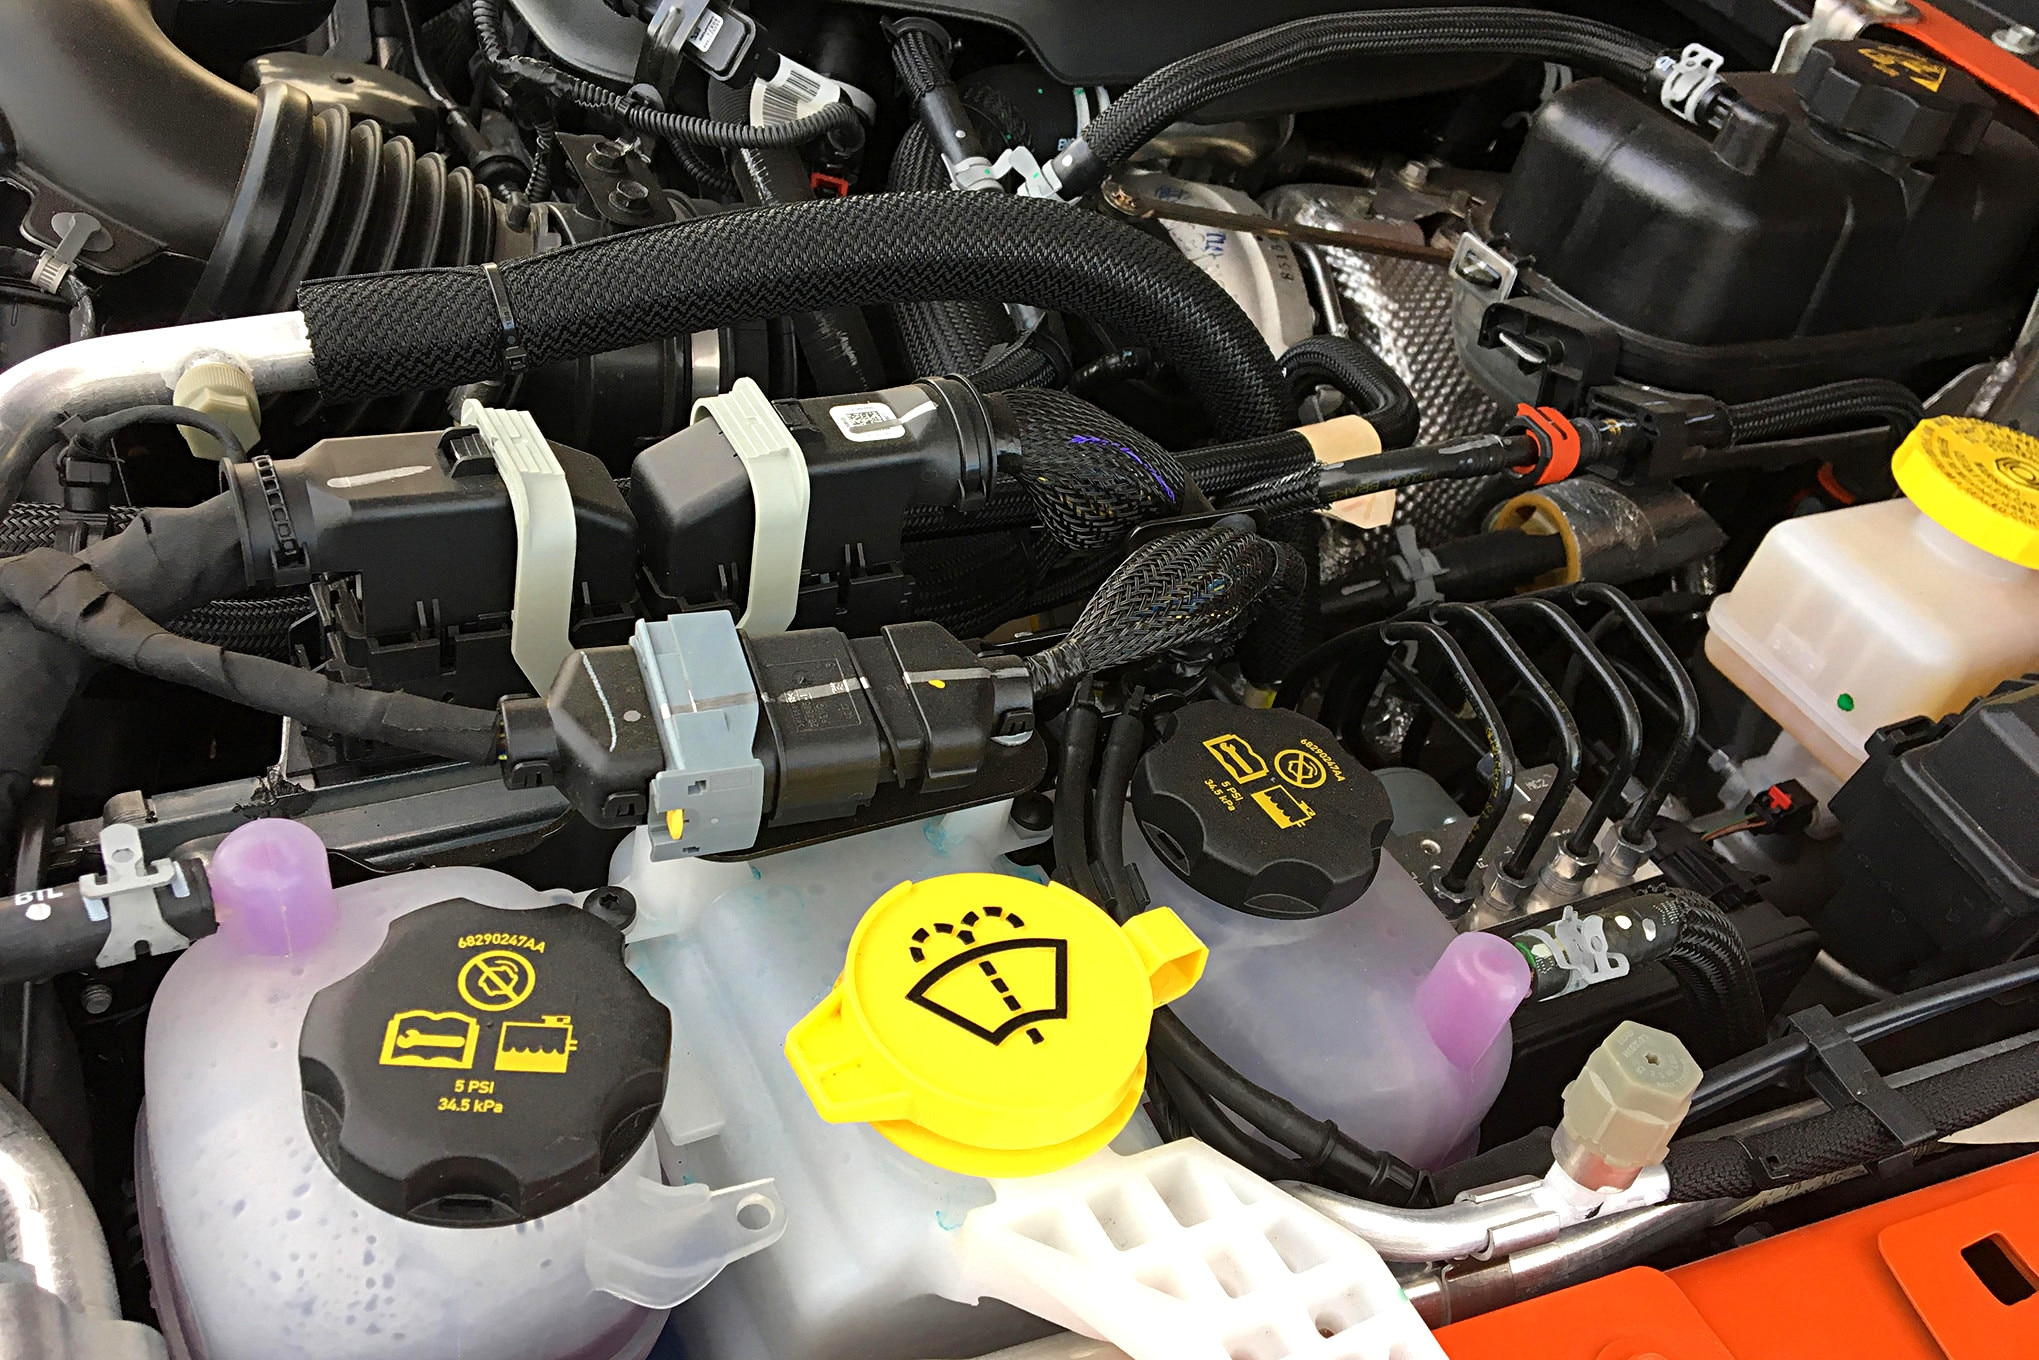 The JL's 2.0L turbo eTorque has three coolant reservoirs (hence three independent cooling systems): a motor-generator unit coolant reservoir in bottom left, turbo coolant reservoir in bottom center, and traditional engine coolant reservoir in top right. And not just any coolant—it must be Organic Additive Technology (OAT), conforming to FCA specifications.